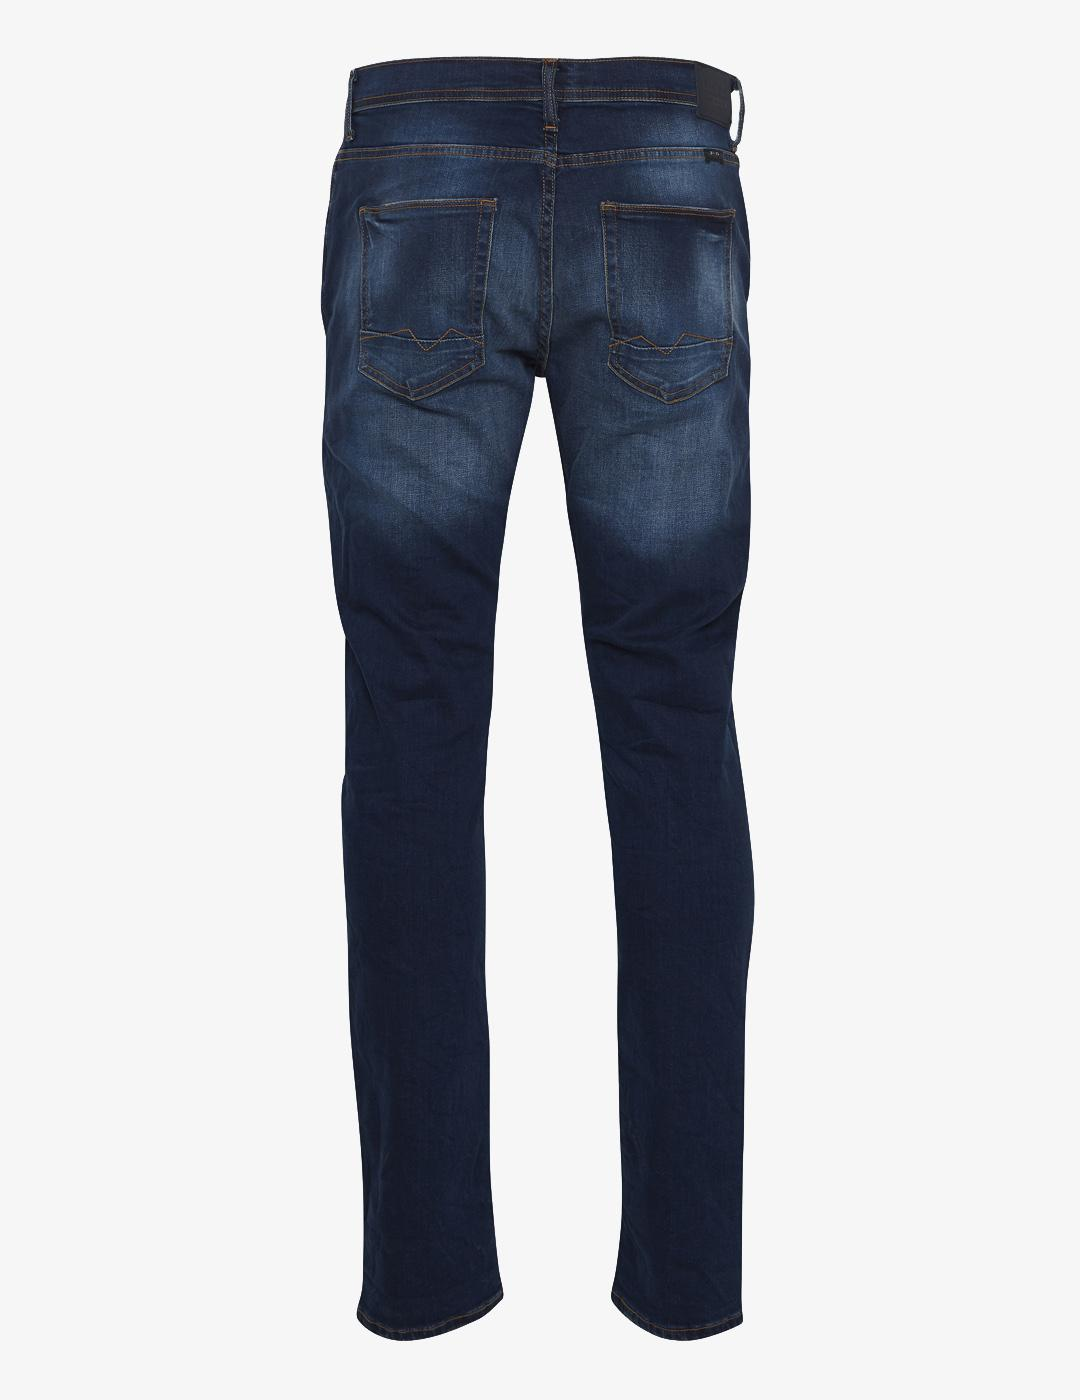 Pantalón 9689 CLEAN - Denim Dark Blue